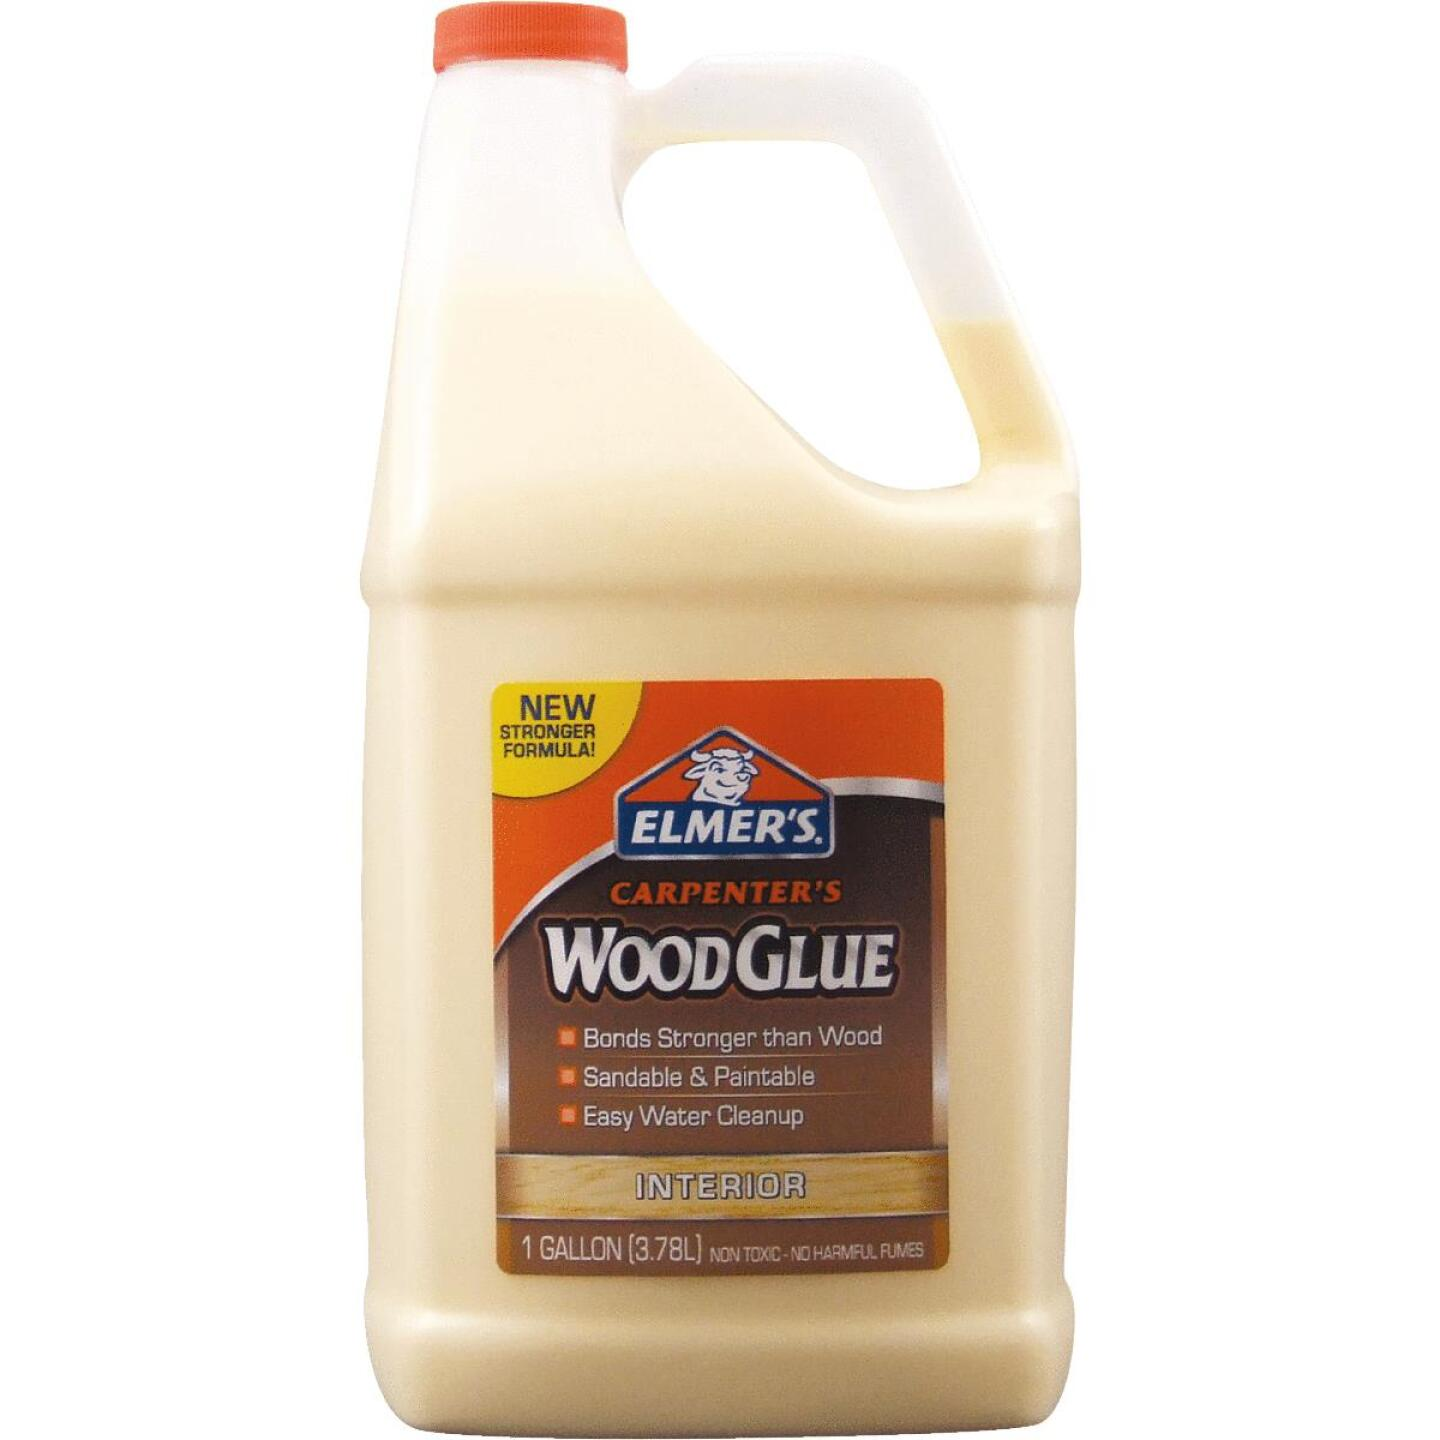 Elmer's Carpenter's 1 Gal. Wood Glue Image 1